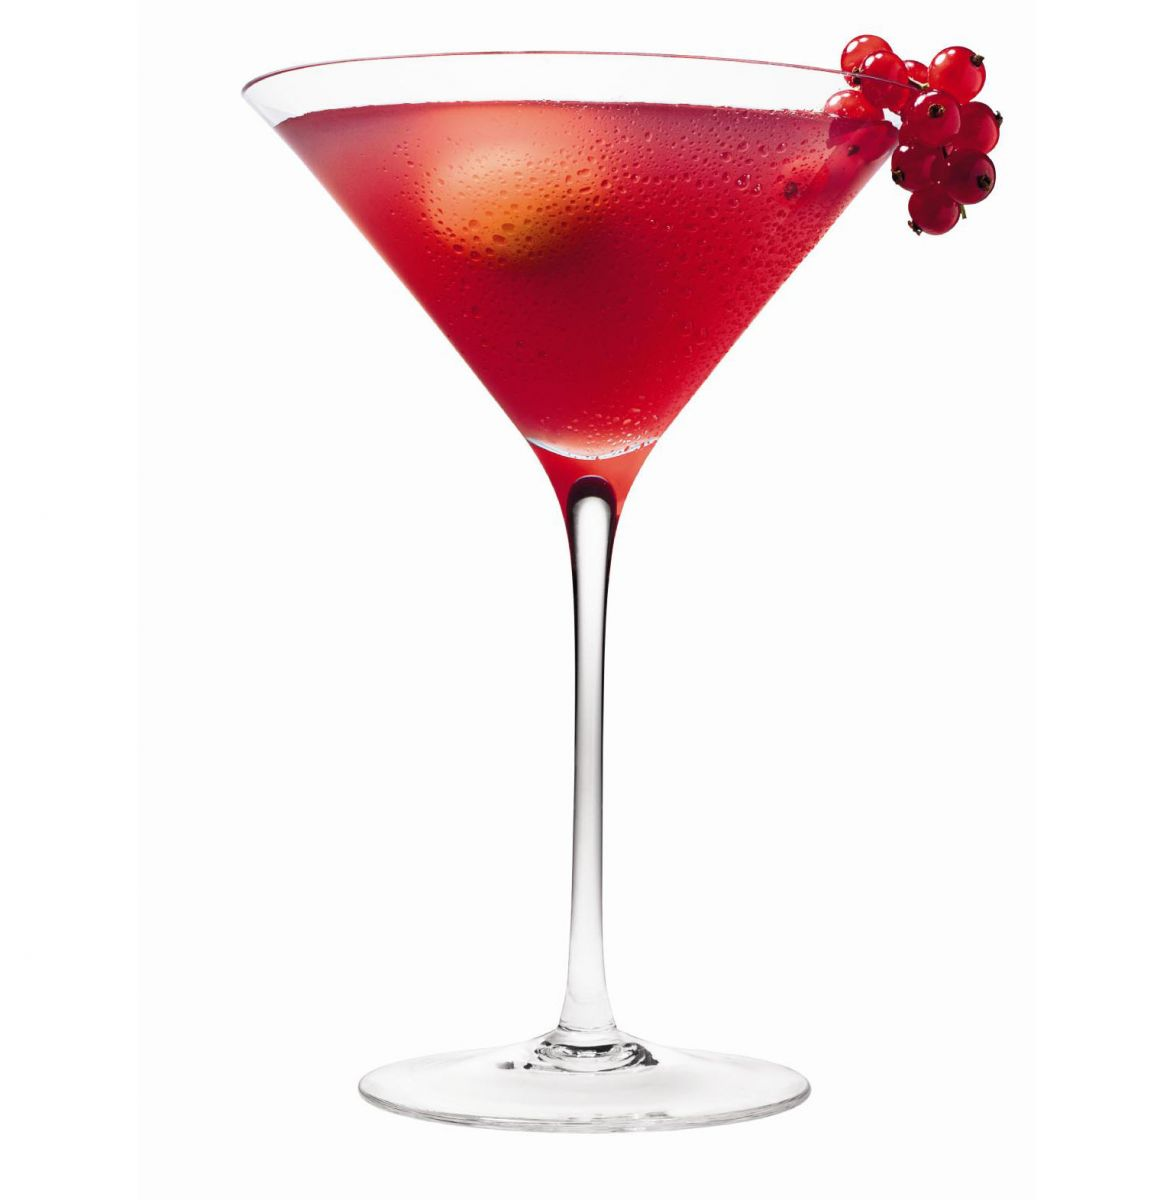 drink is definitely an exquisite jewel among the alcoholic pomegranate ...